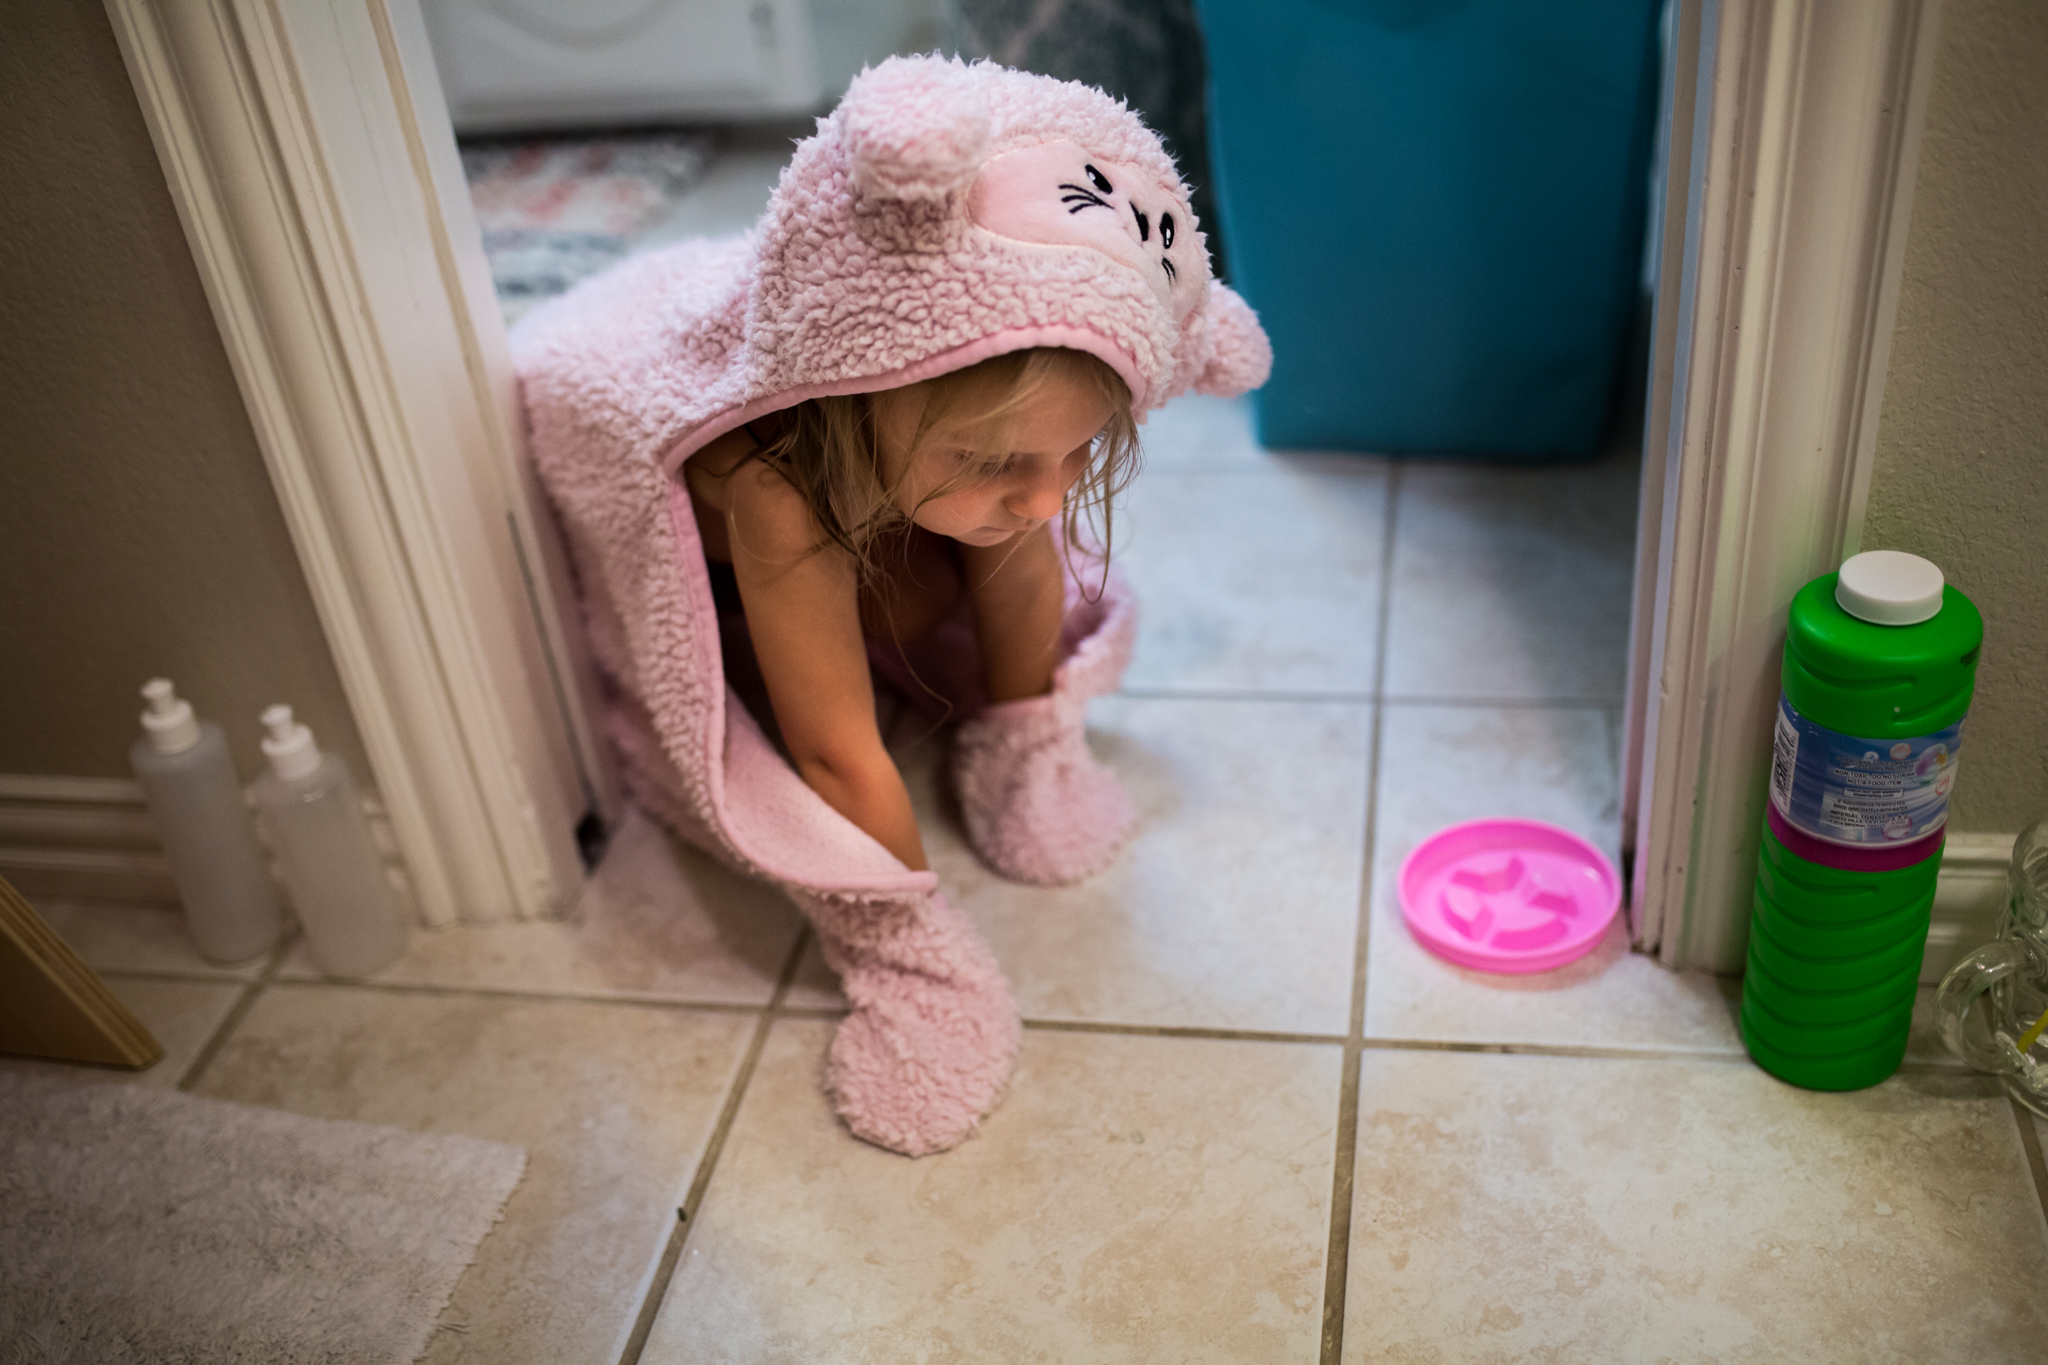 Lawren Rose Photography takes a picture of a little girl crawling on the floor wearing a cat towel pretending to be a cat during an in-home family session in farmers branch texas